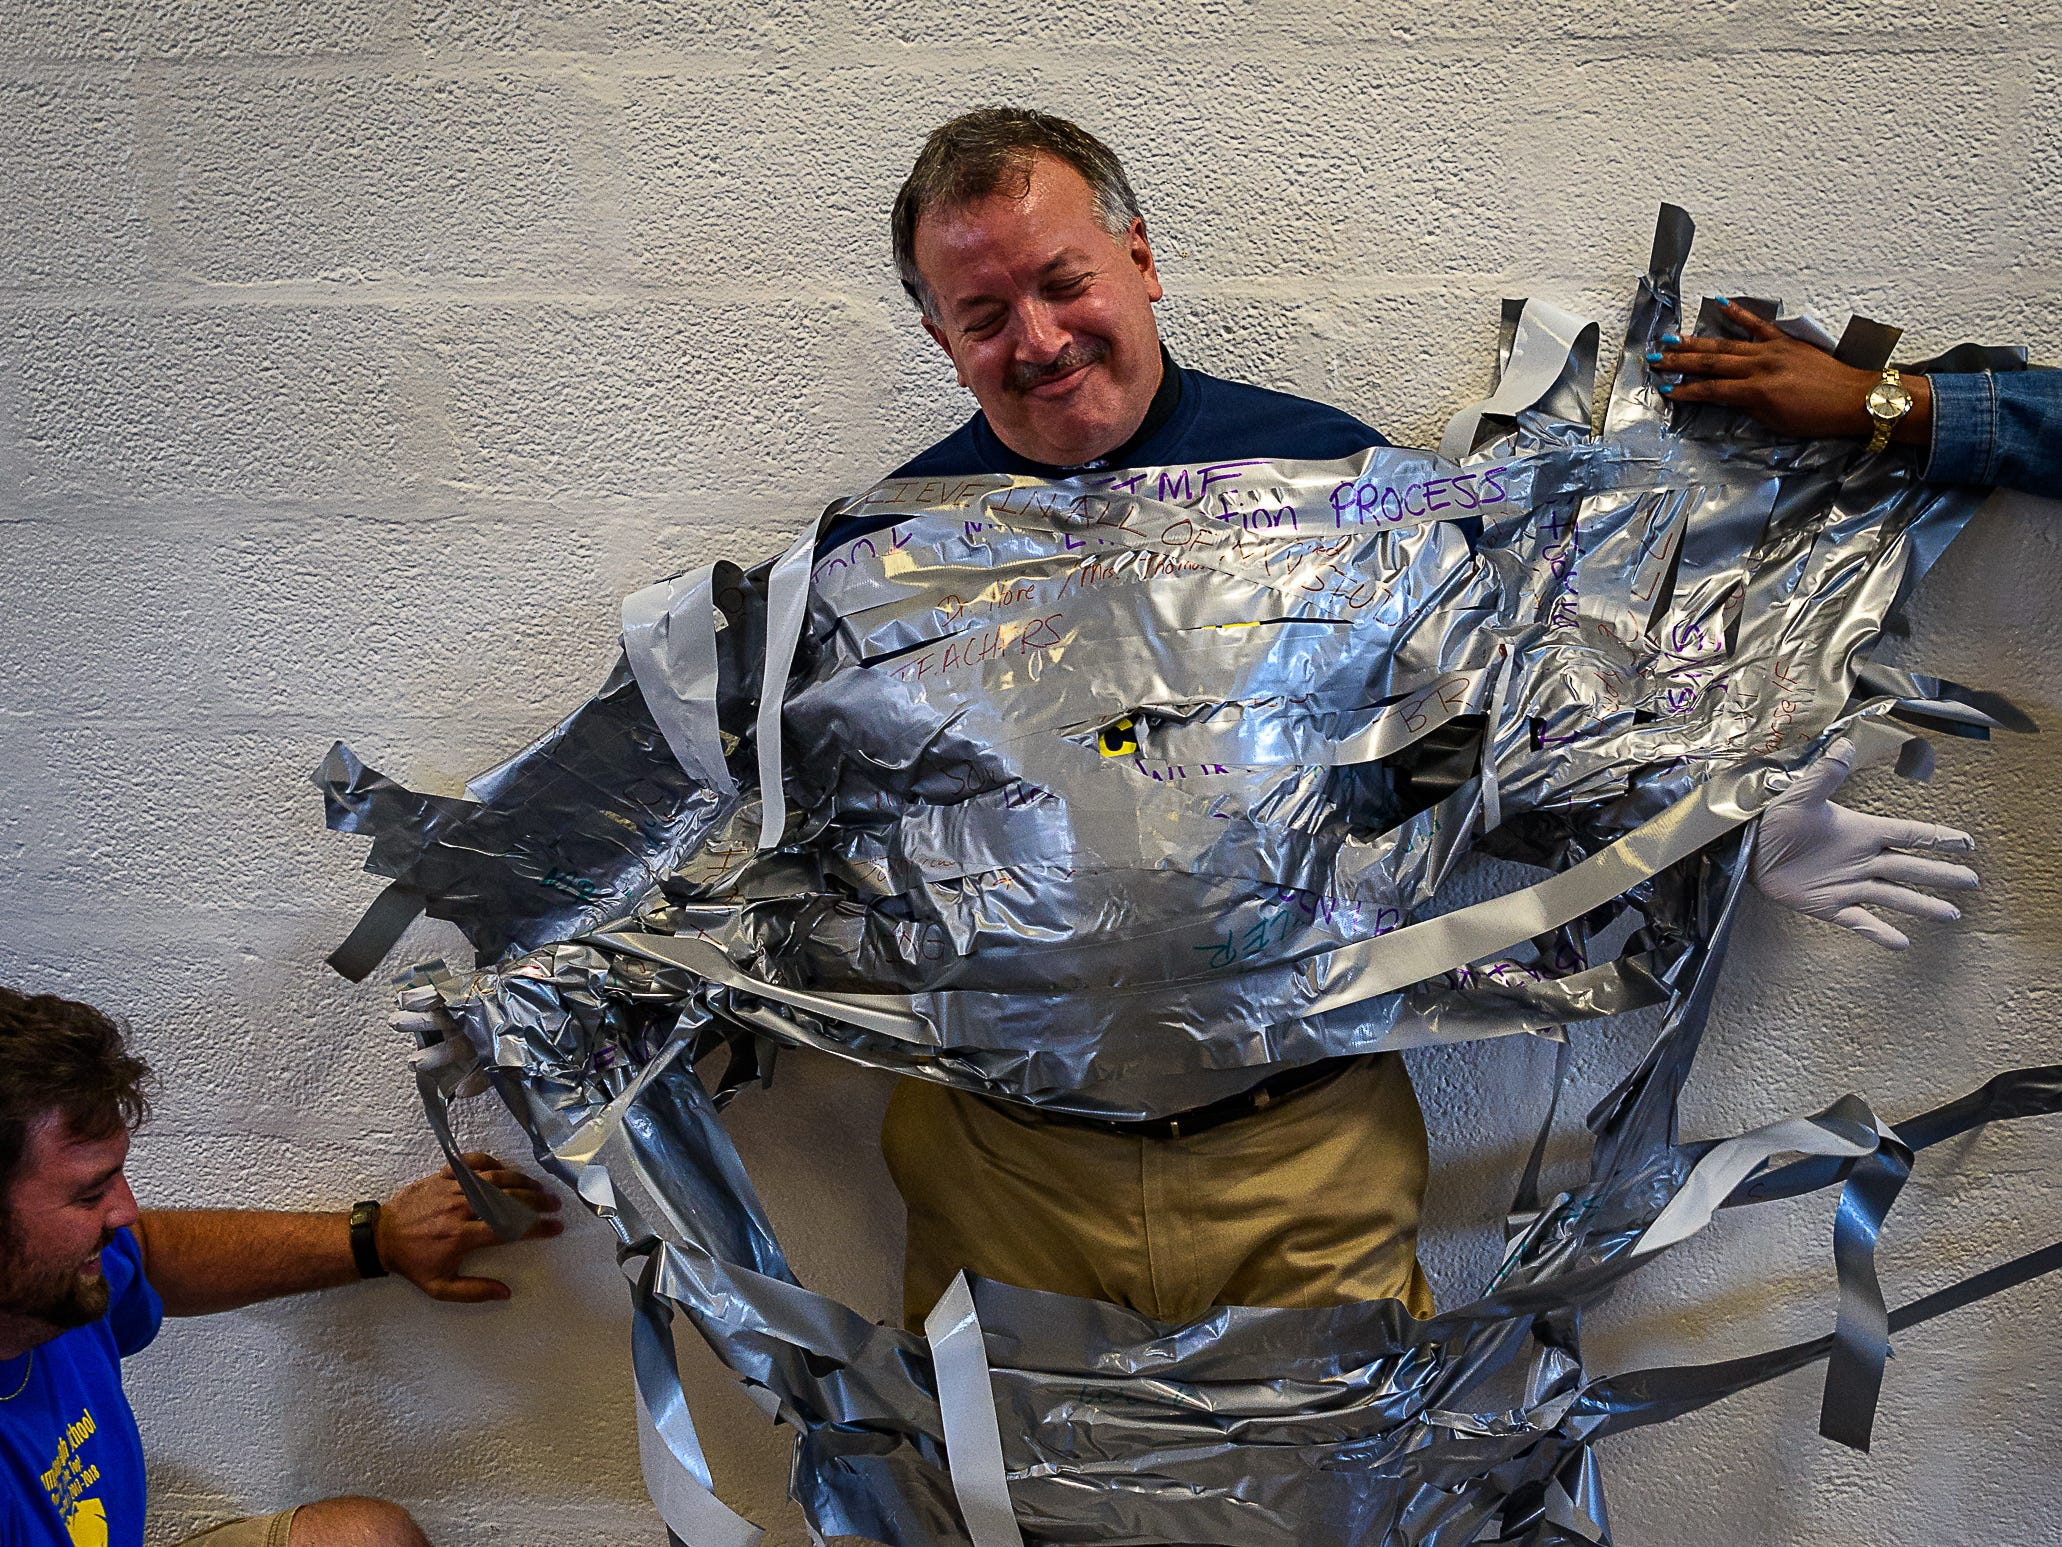 Four rolls of duct tape were not quite enough to hold Principal Mike Myers to the wall at Northampton High School.